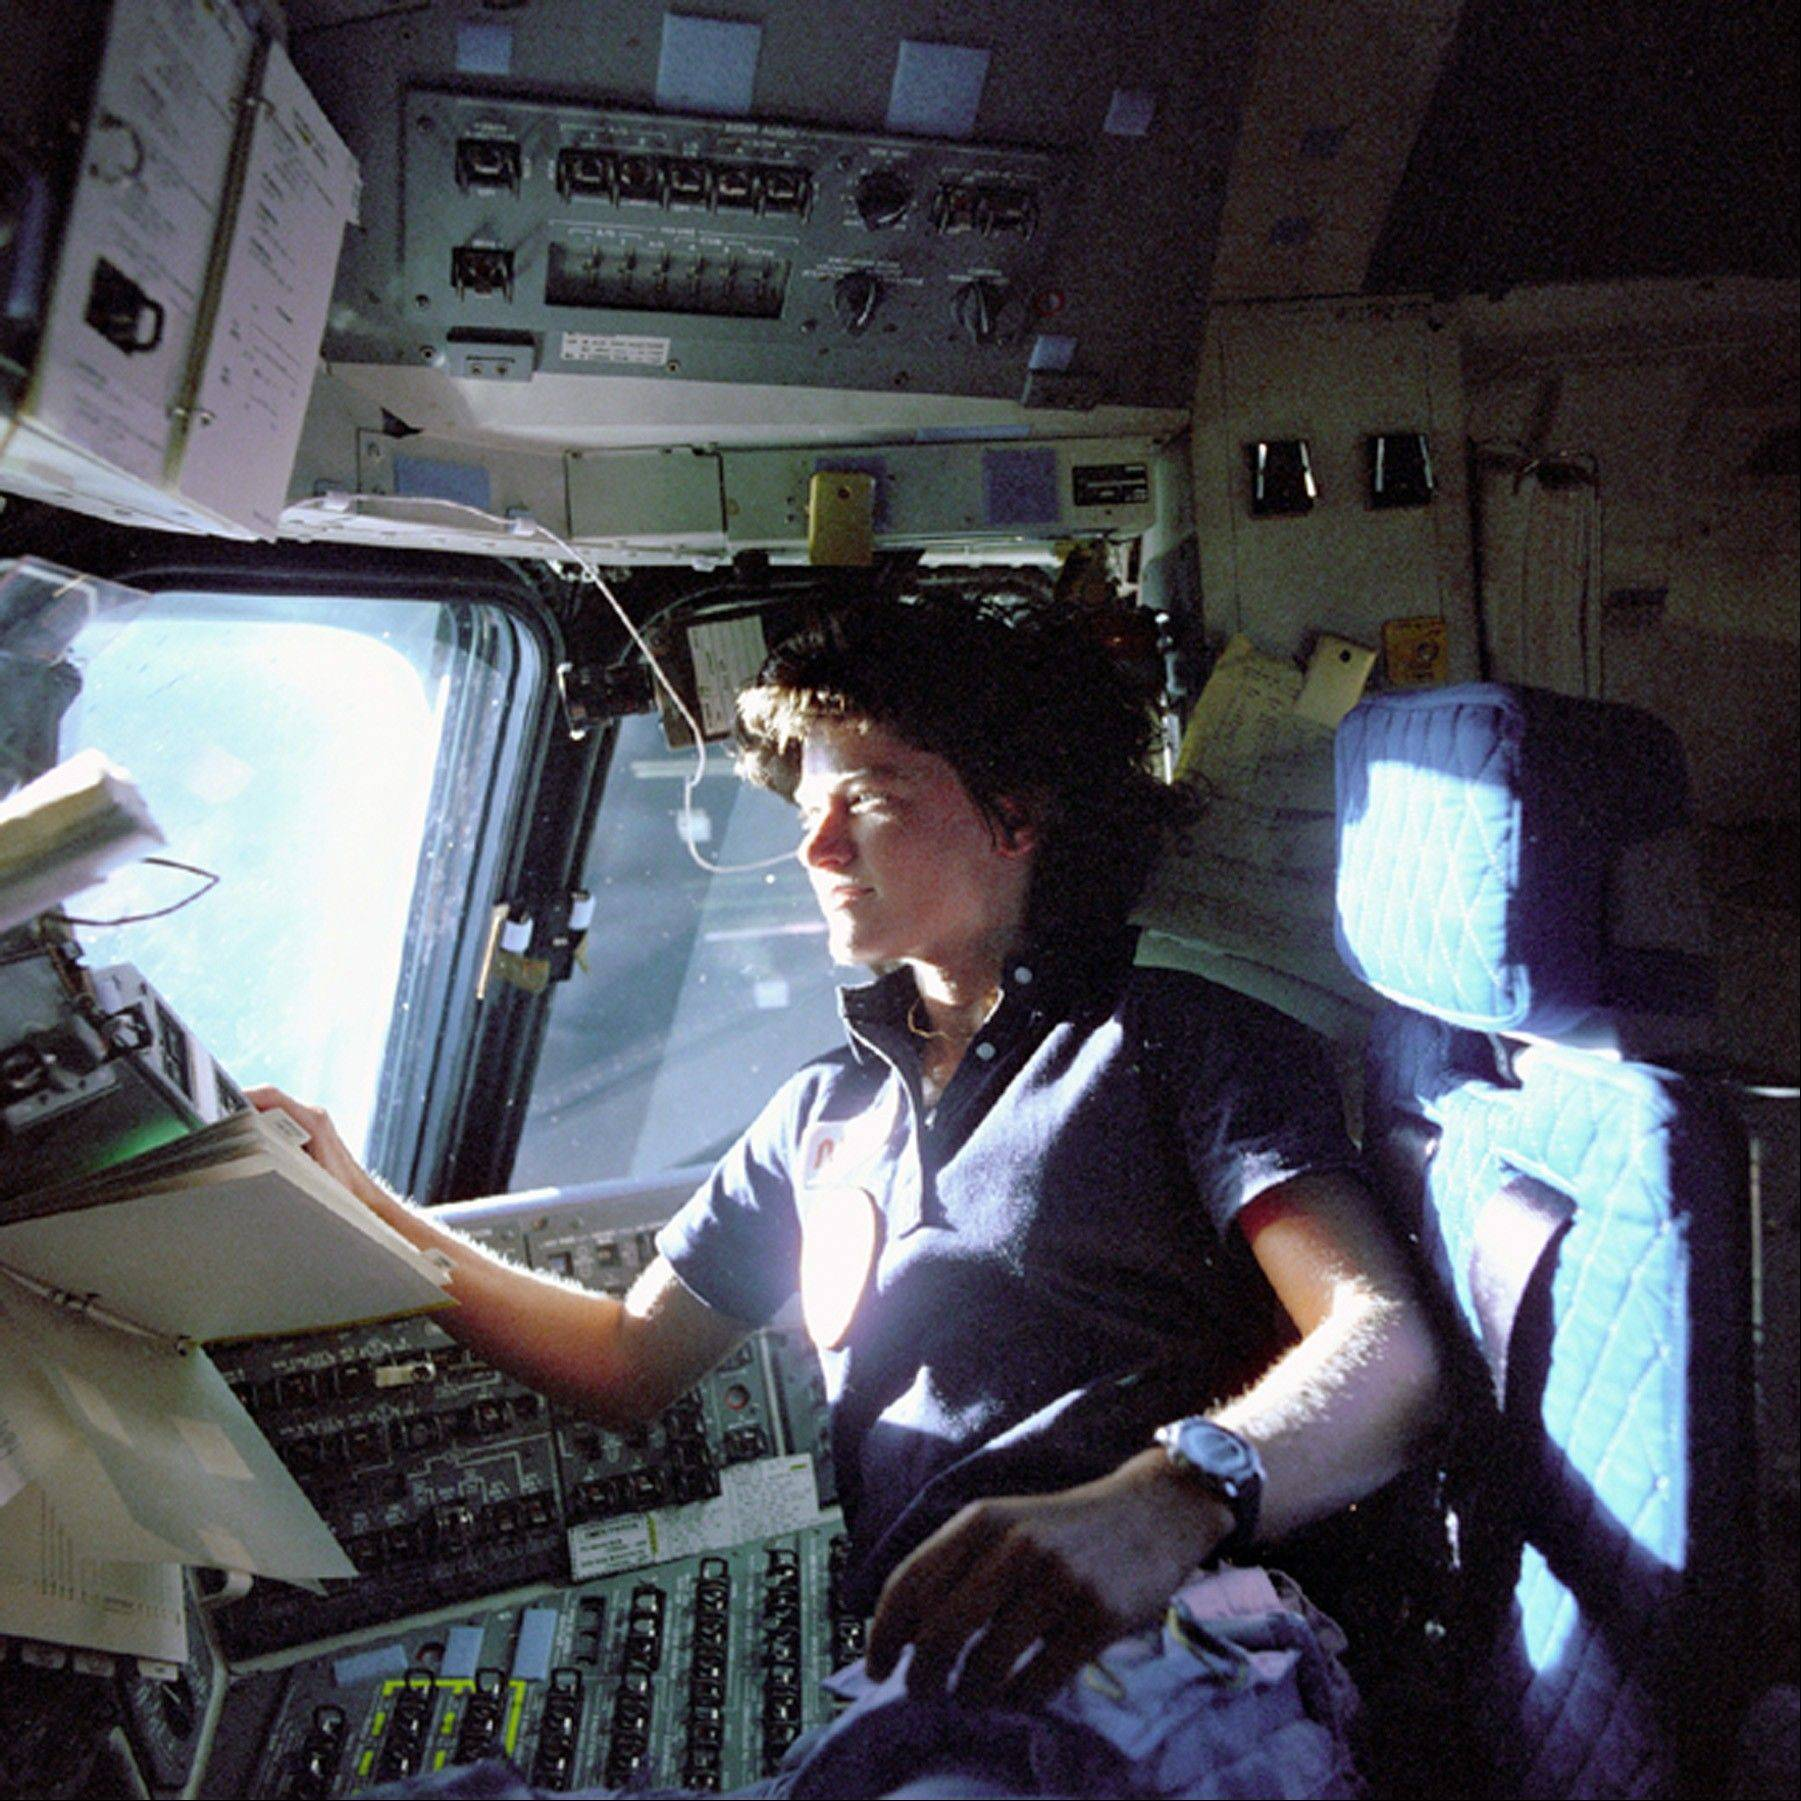 Astronaut Sally Ride, a specialist on shuttle mission STS-7, monitors control panels from the pilot's chair on the shuttle Columbia flight deck. Ride became America's first woman in space when Columbia launched June 18, 1983.